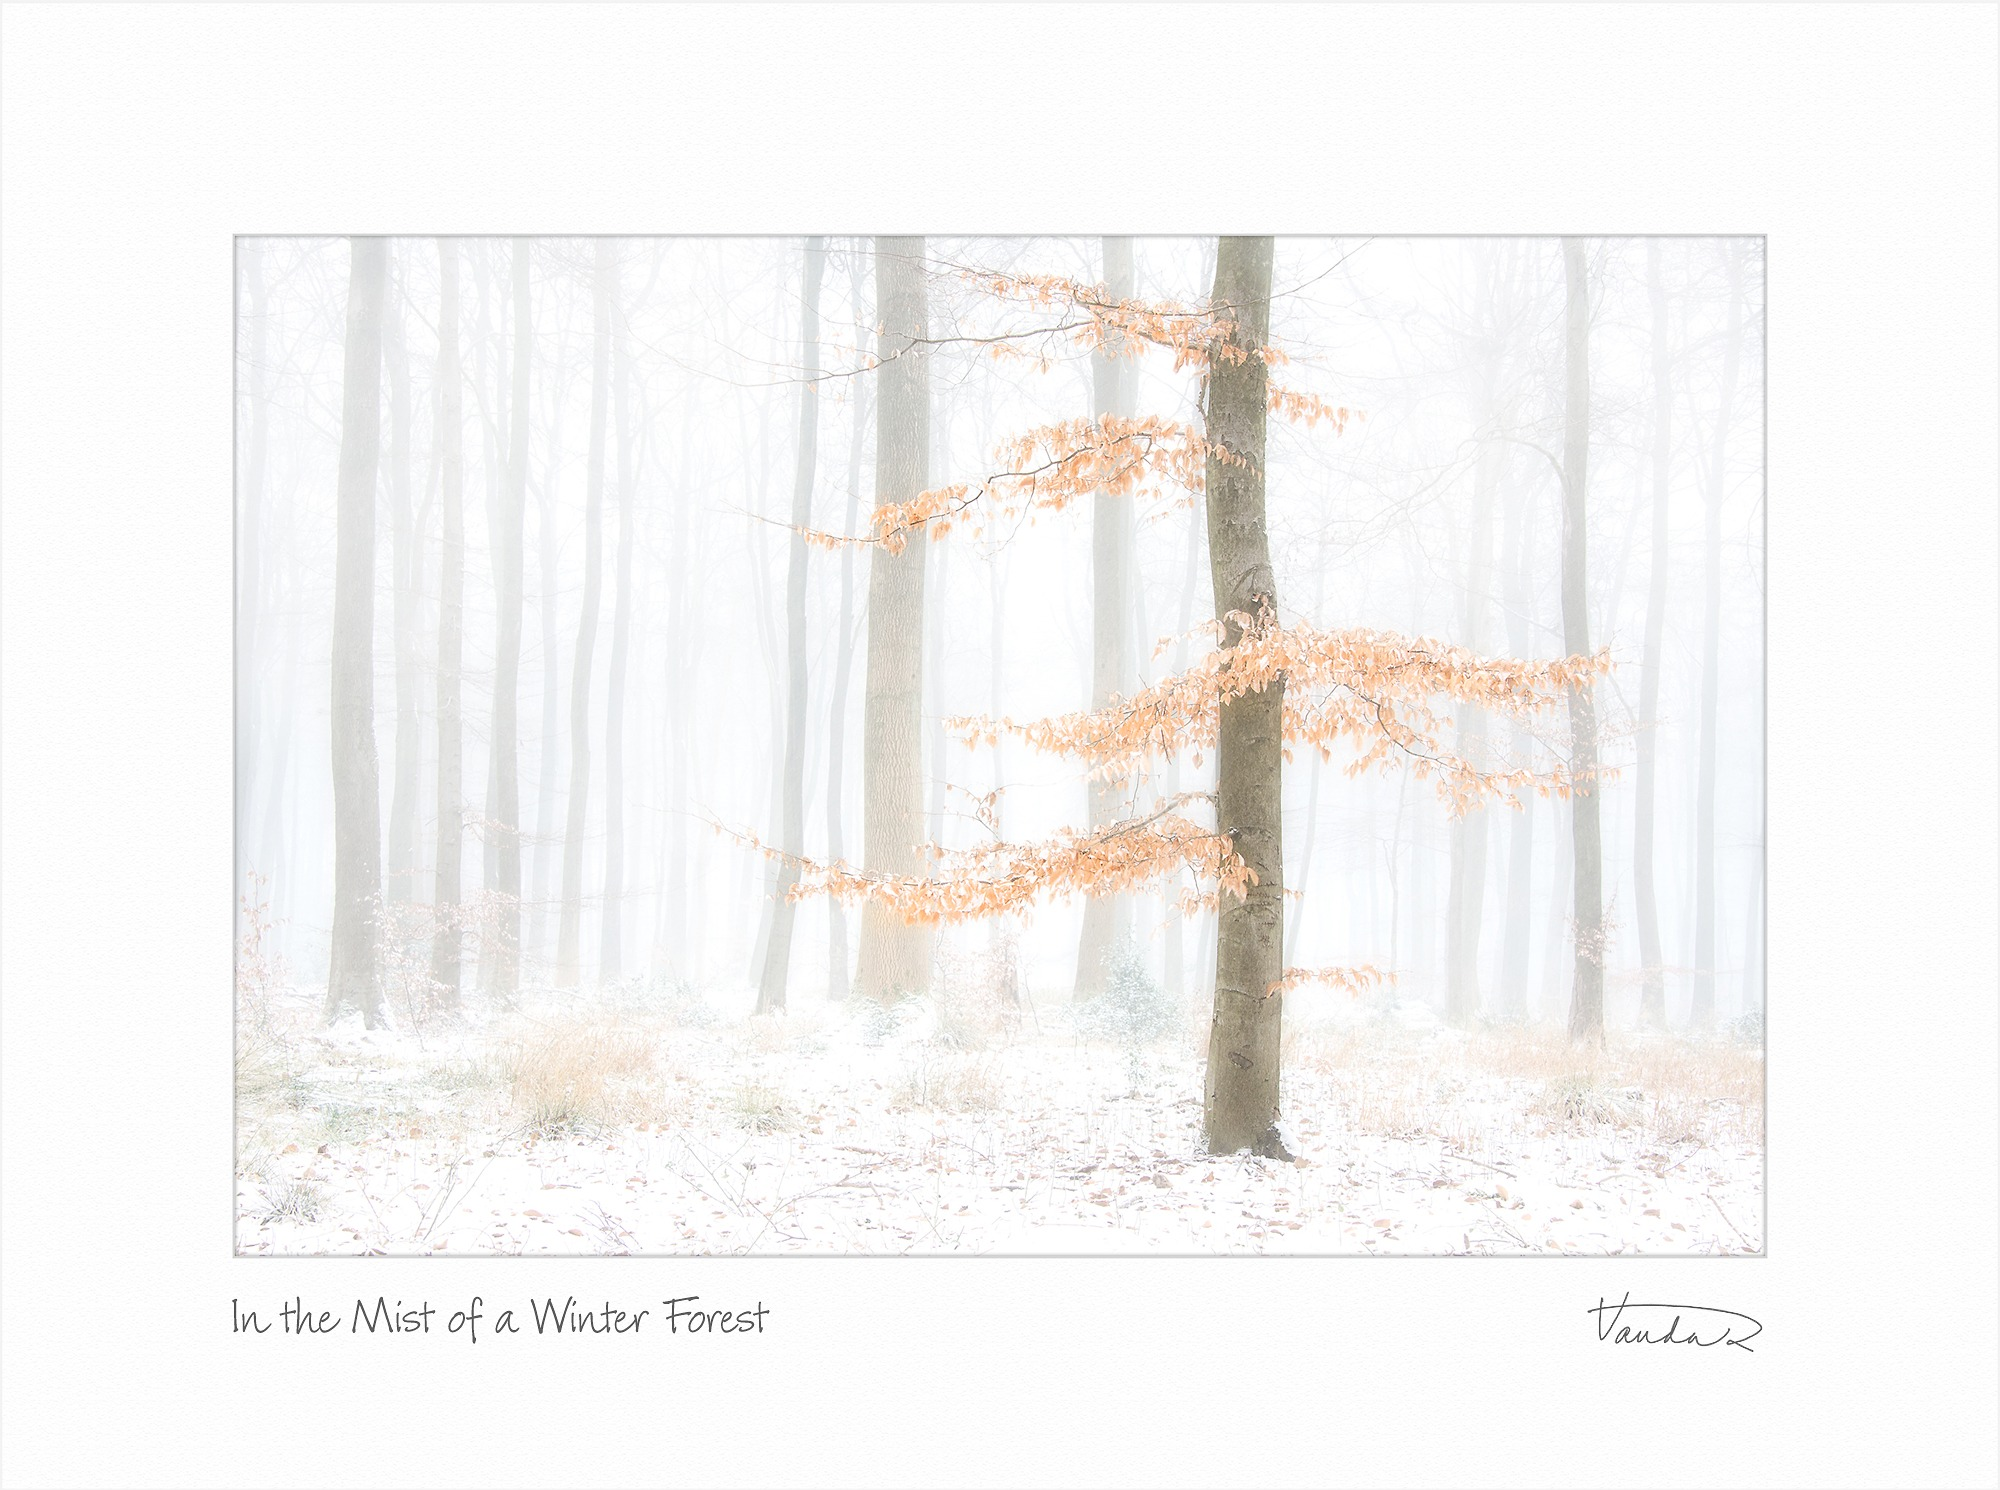 In the Mist of a Winter Forest